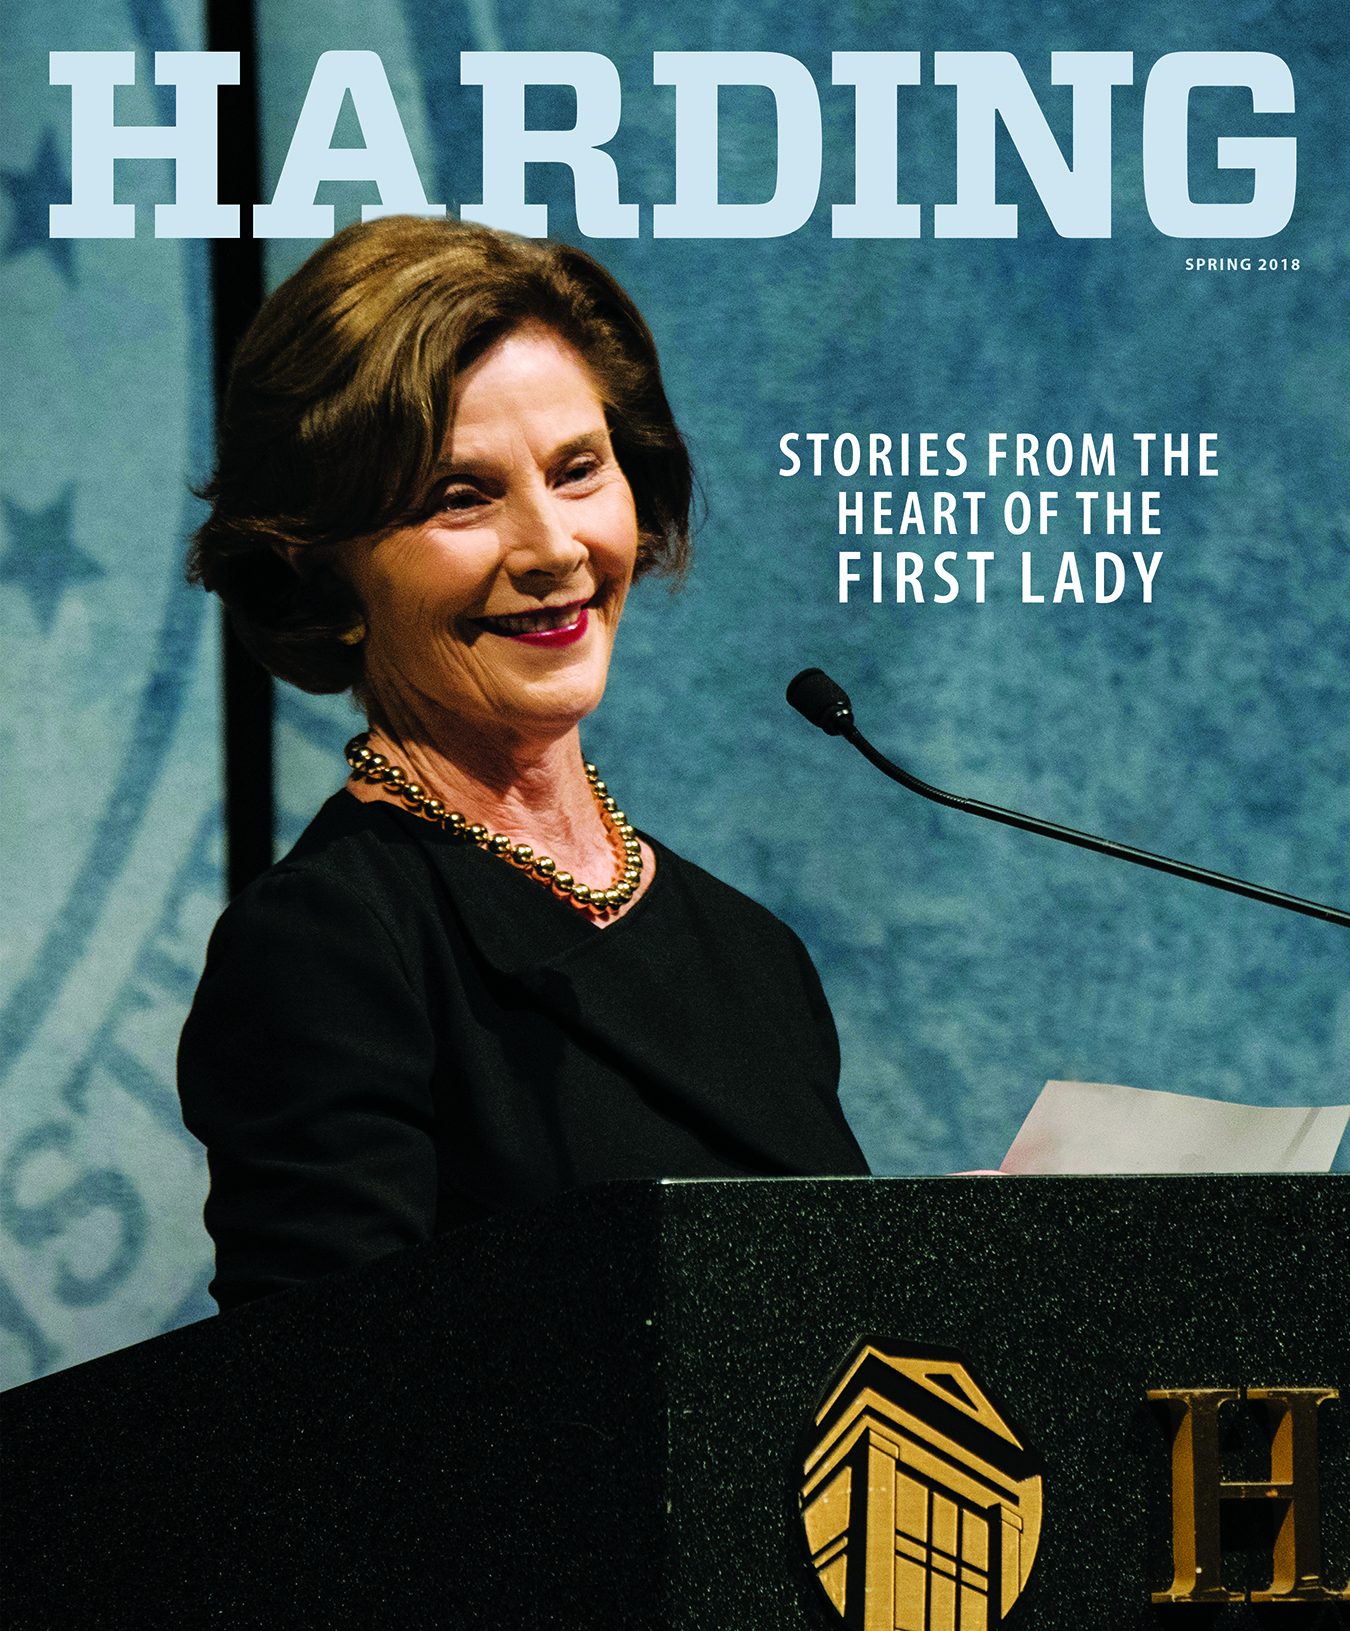 https://wordpress.harding.edu/harding/files/2018/10/Harding-spring-cover-18_web.jpg